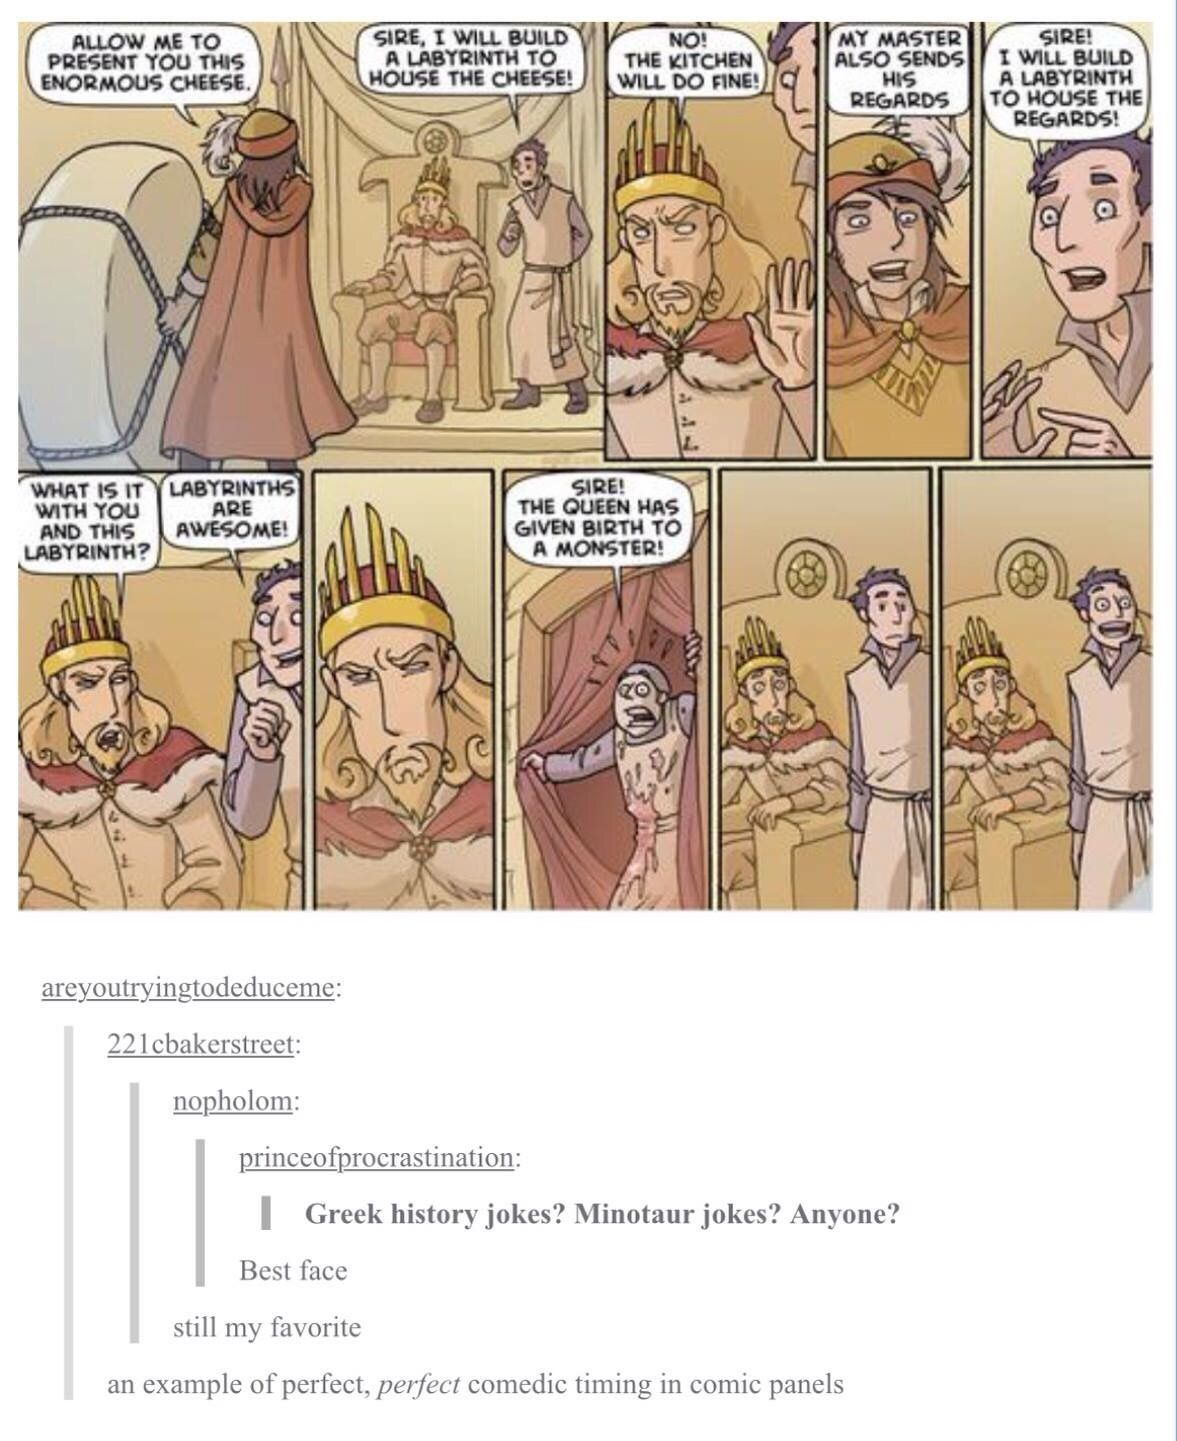 Pin By Crystal Royal On Things That Make Me Laugh Tumblr Funny Mythology Funny Comics